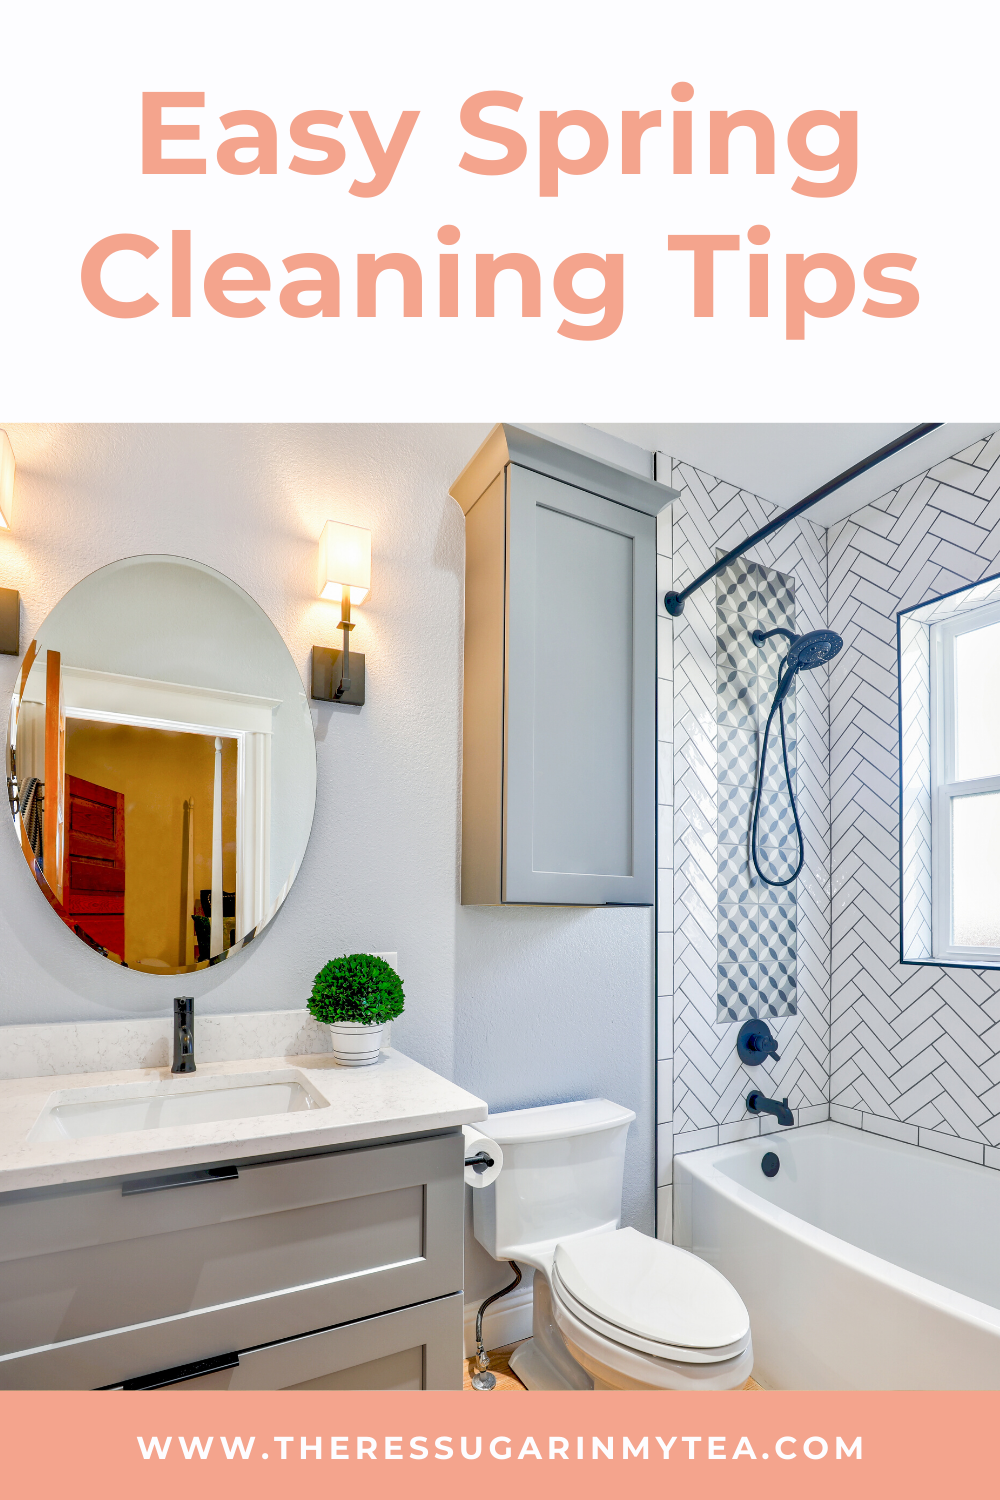 Pin On Cleaning Schedules